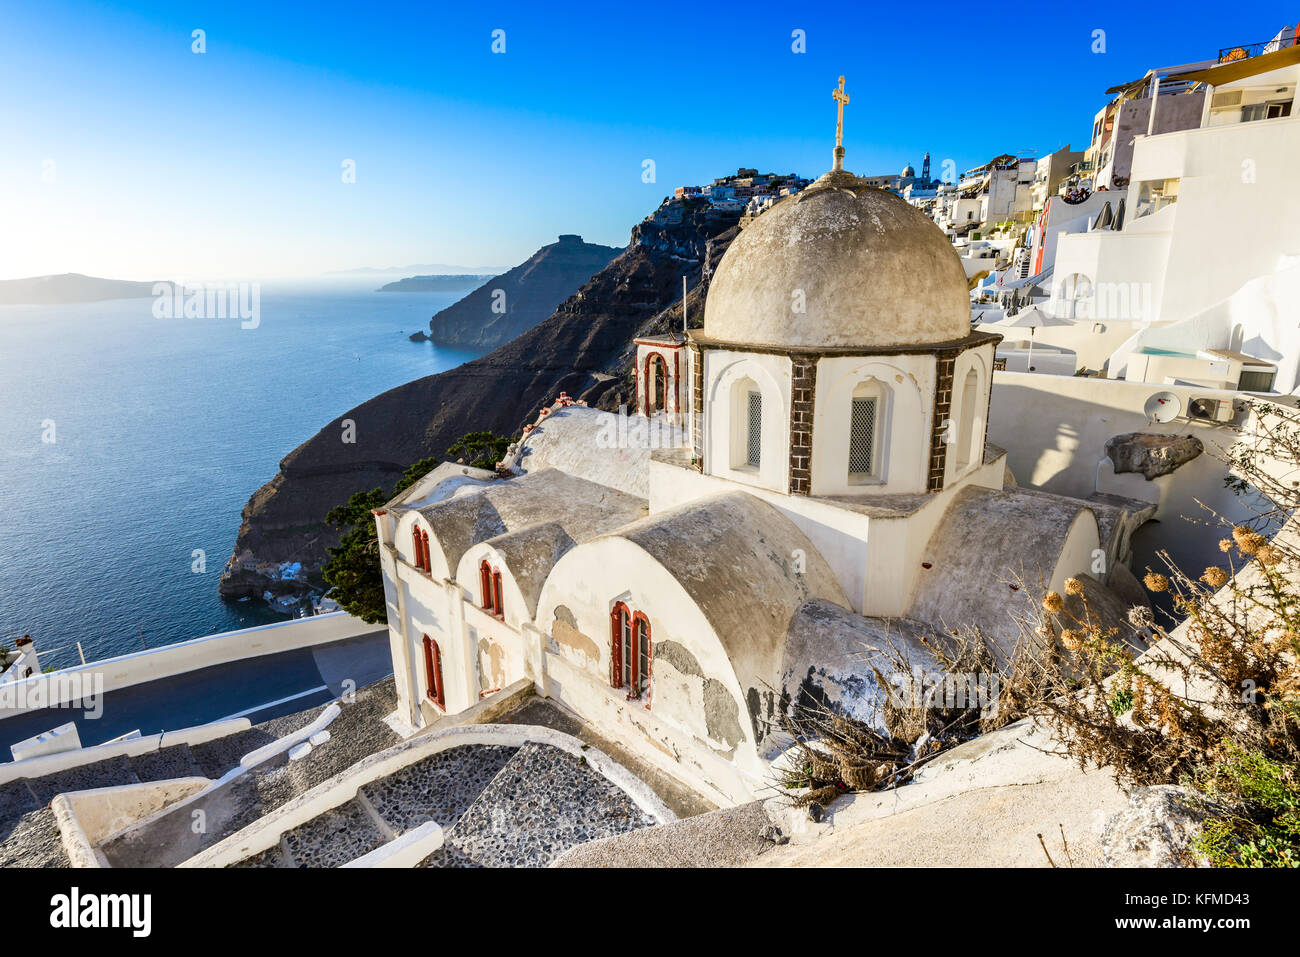 Santorini, Greece. Fira, with old greek church and caldera at Aegean Sea, Thira. - Stock Image